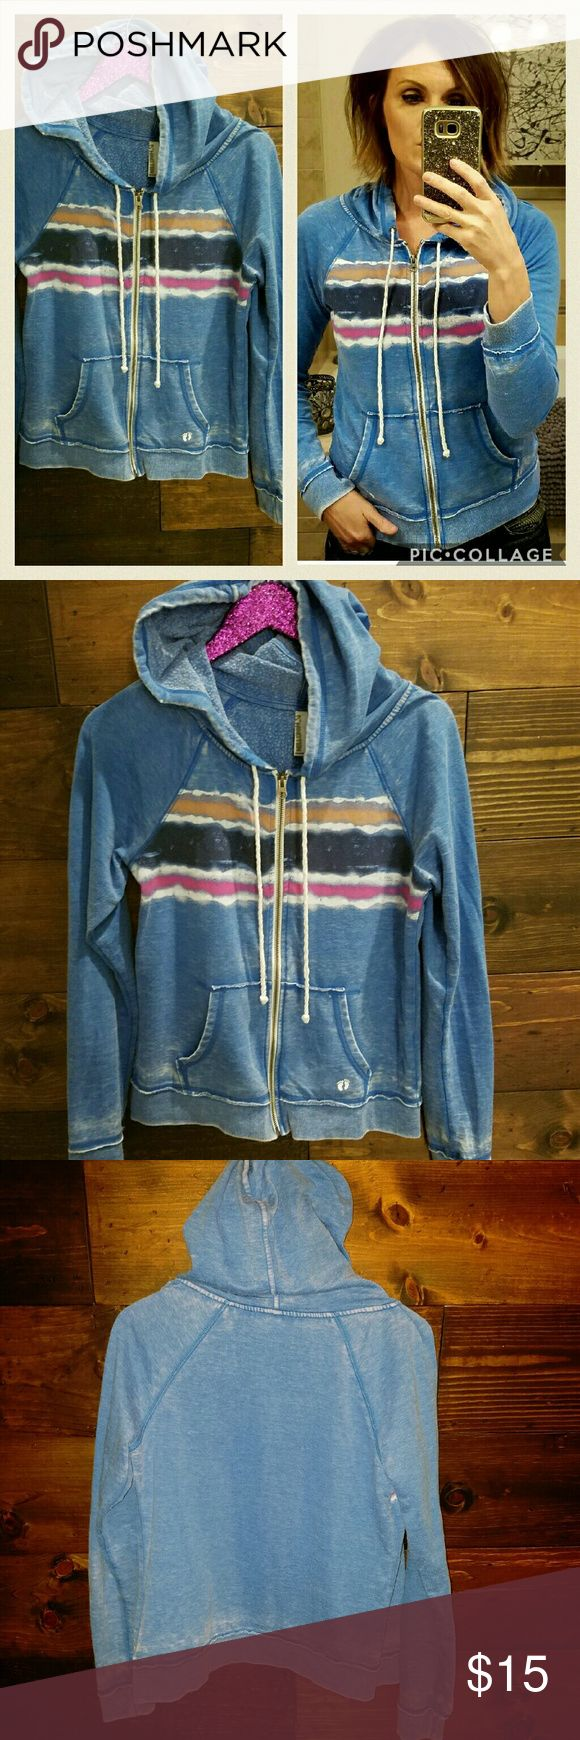 (Hang Ten) Blue striped zip up hoodie Comfy and stylish Hang Ten zip up hoodie with bold strips arocss the chest. Gently loved condition. Hang Ten Jackets & Coats